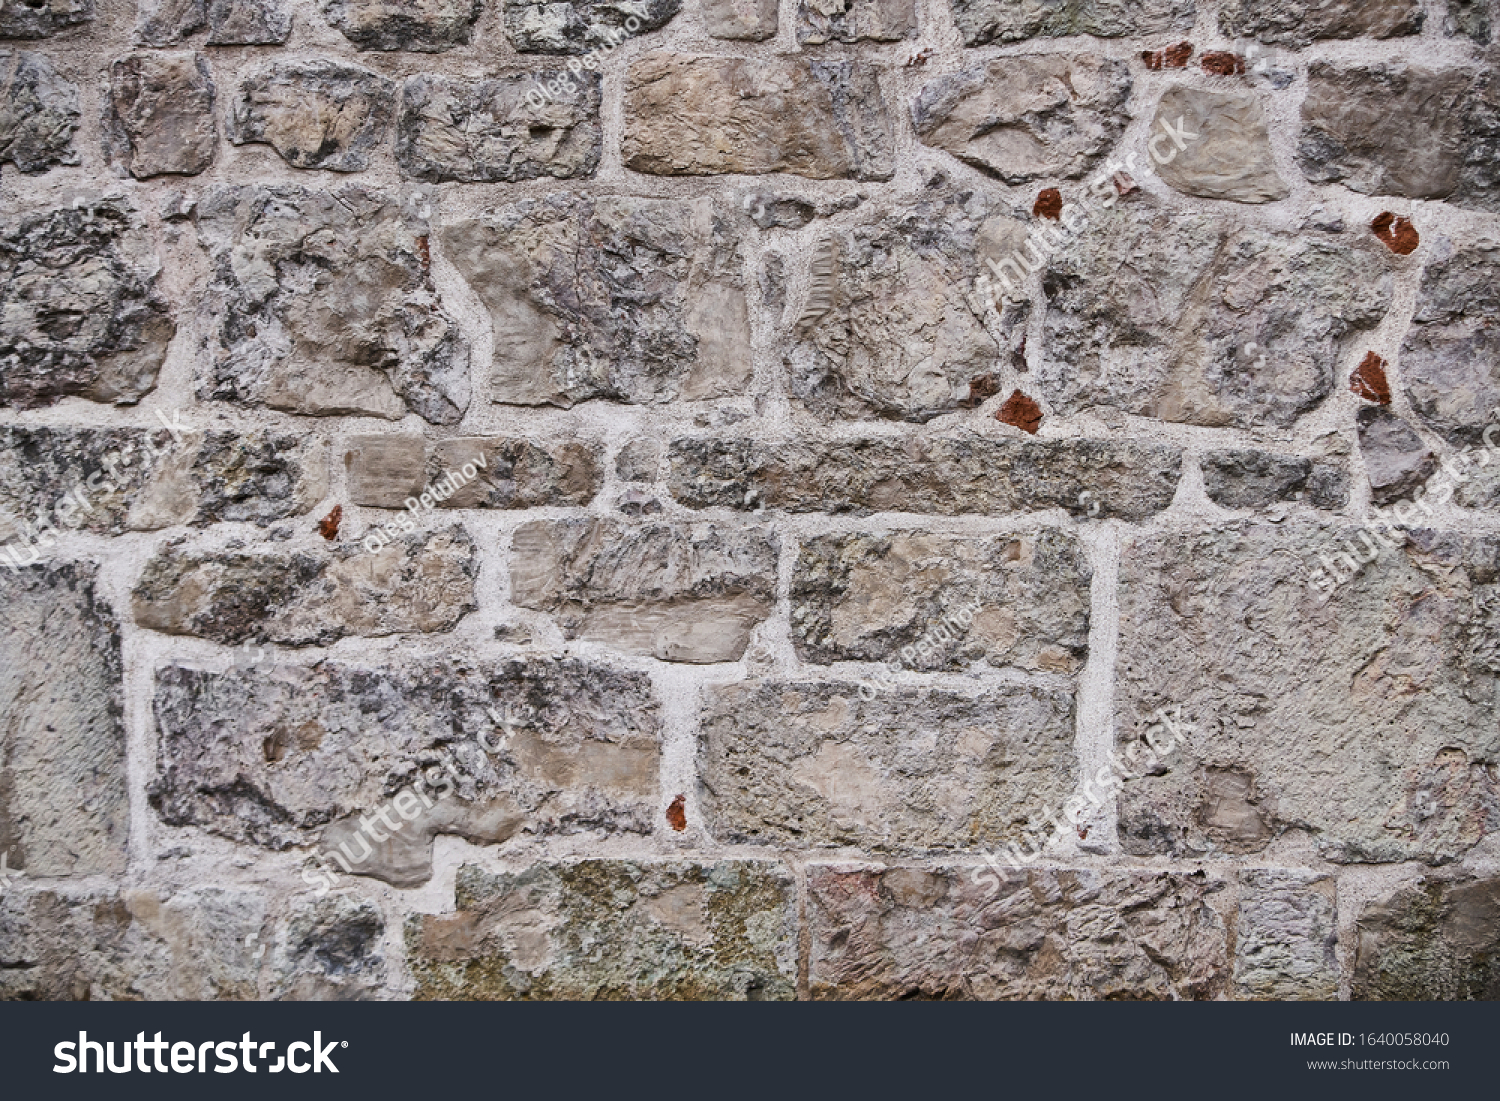 Texture of a stone wall. Old castle stone wall texture background. Stone wall as a background or texture. Part of a stone wall, for background or texture #1640058040